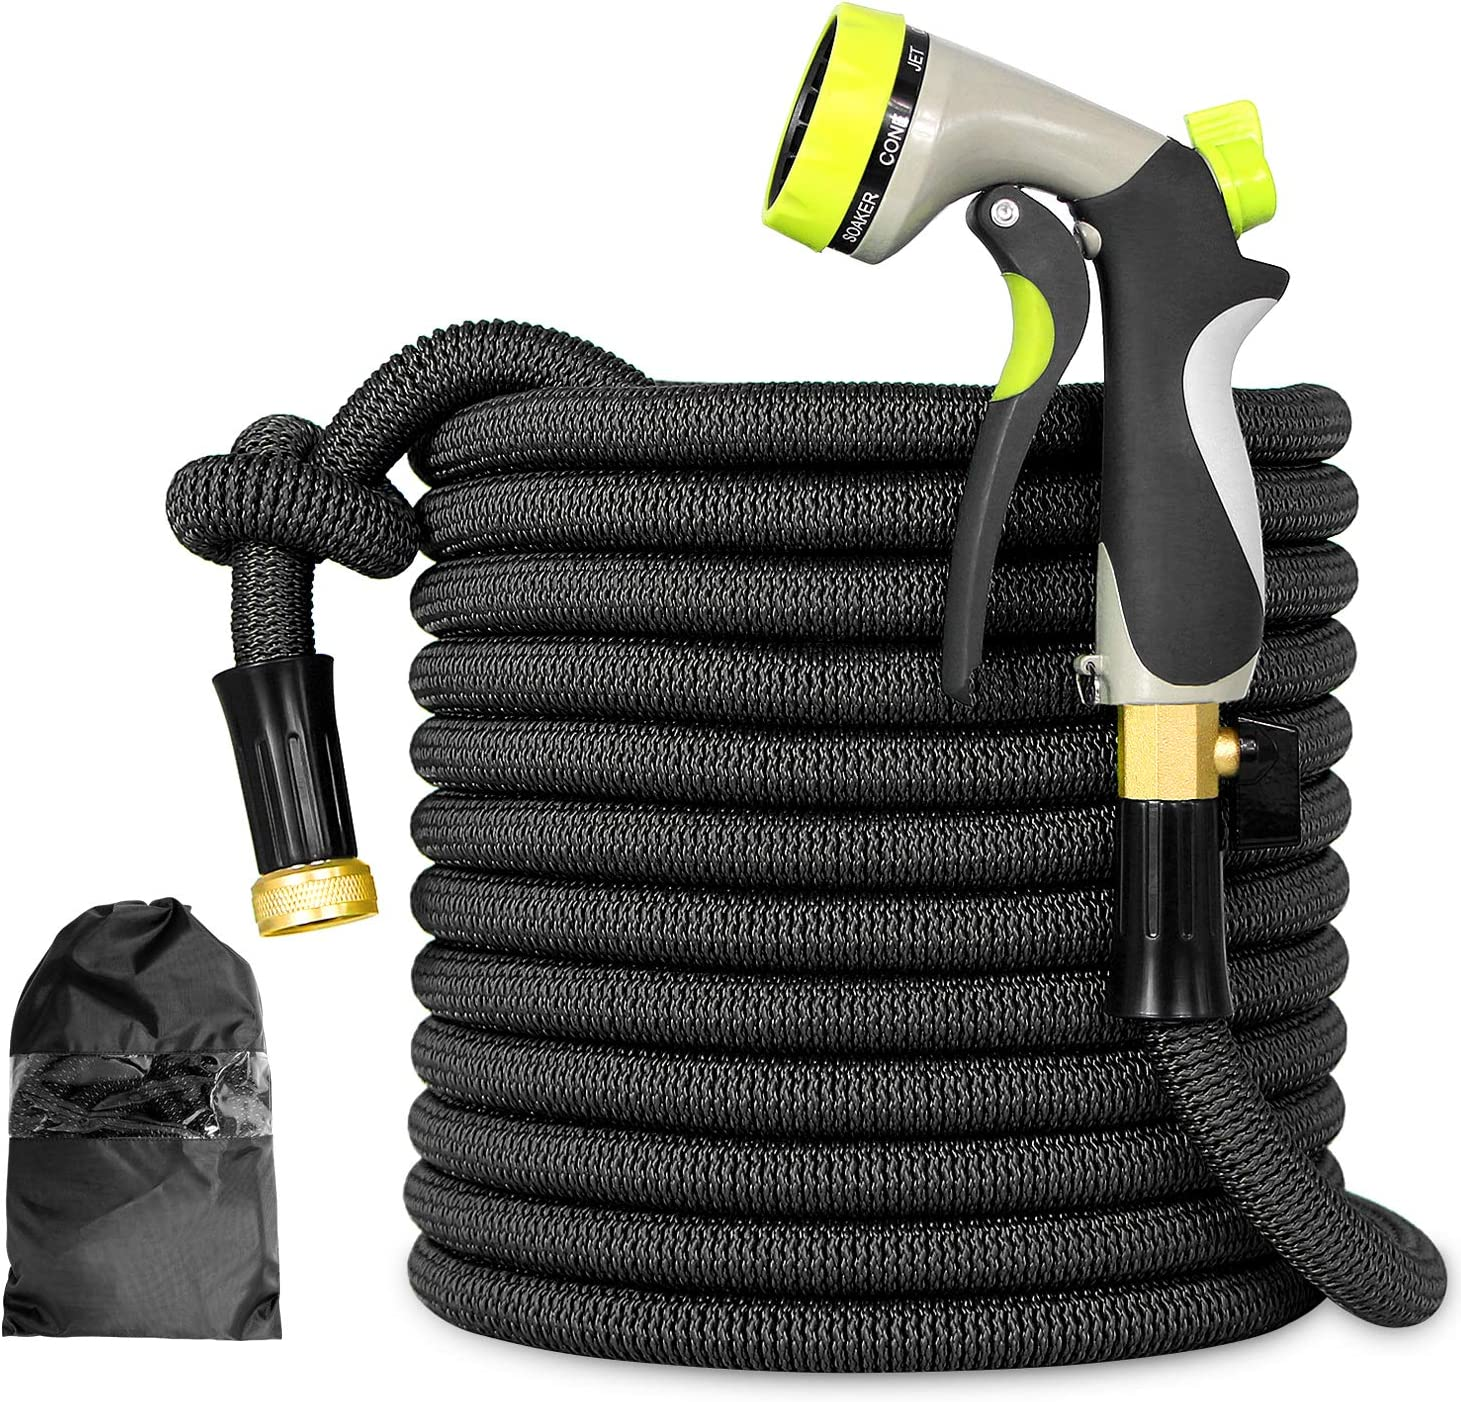 Besiter Flexible and Expandable Garden Hose - Strongest Triple Latex Core with 3/4 Solid Brass Fittings Free 8 Function Spray Nozzle, Easy Storage Kink Free Pocket Water Hose(50FT)